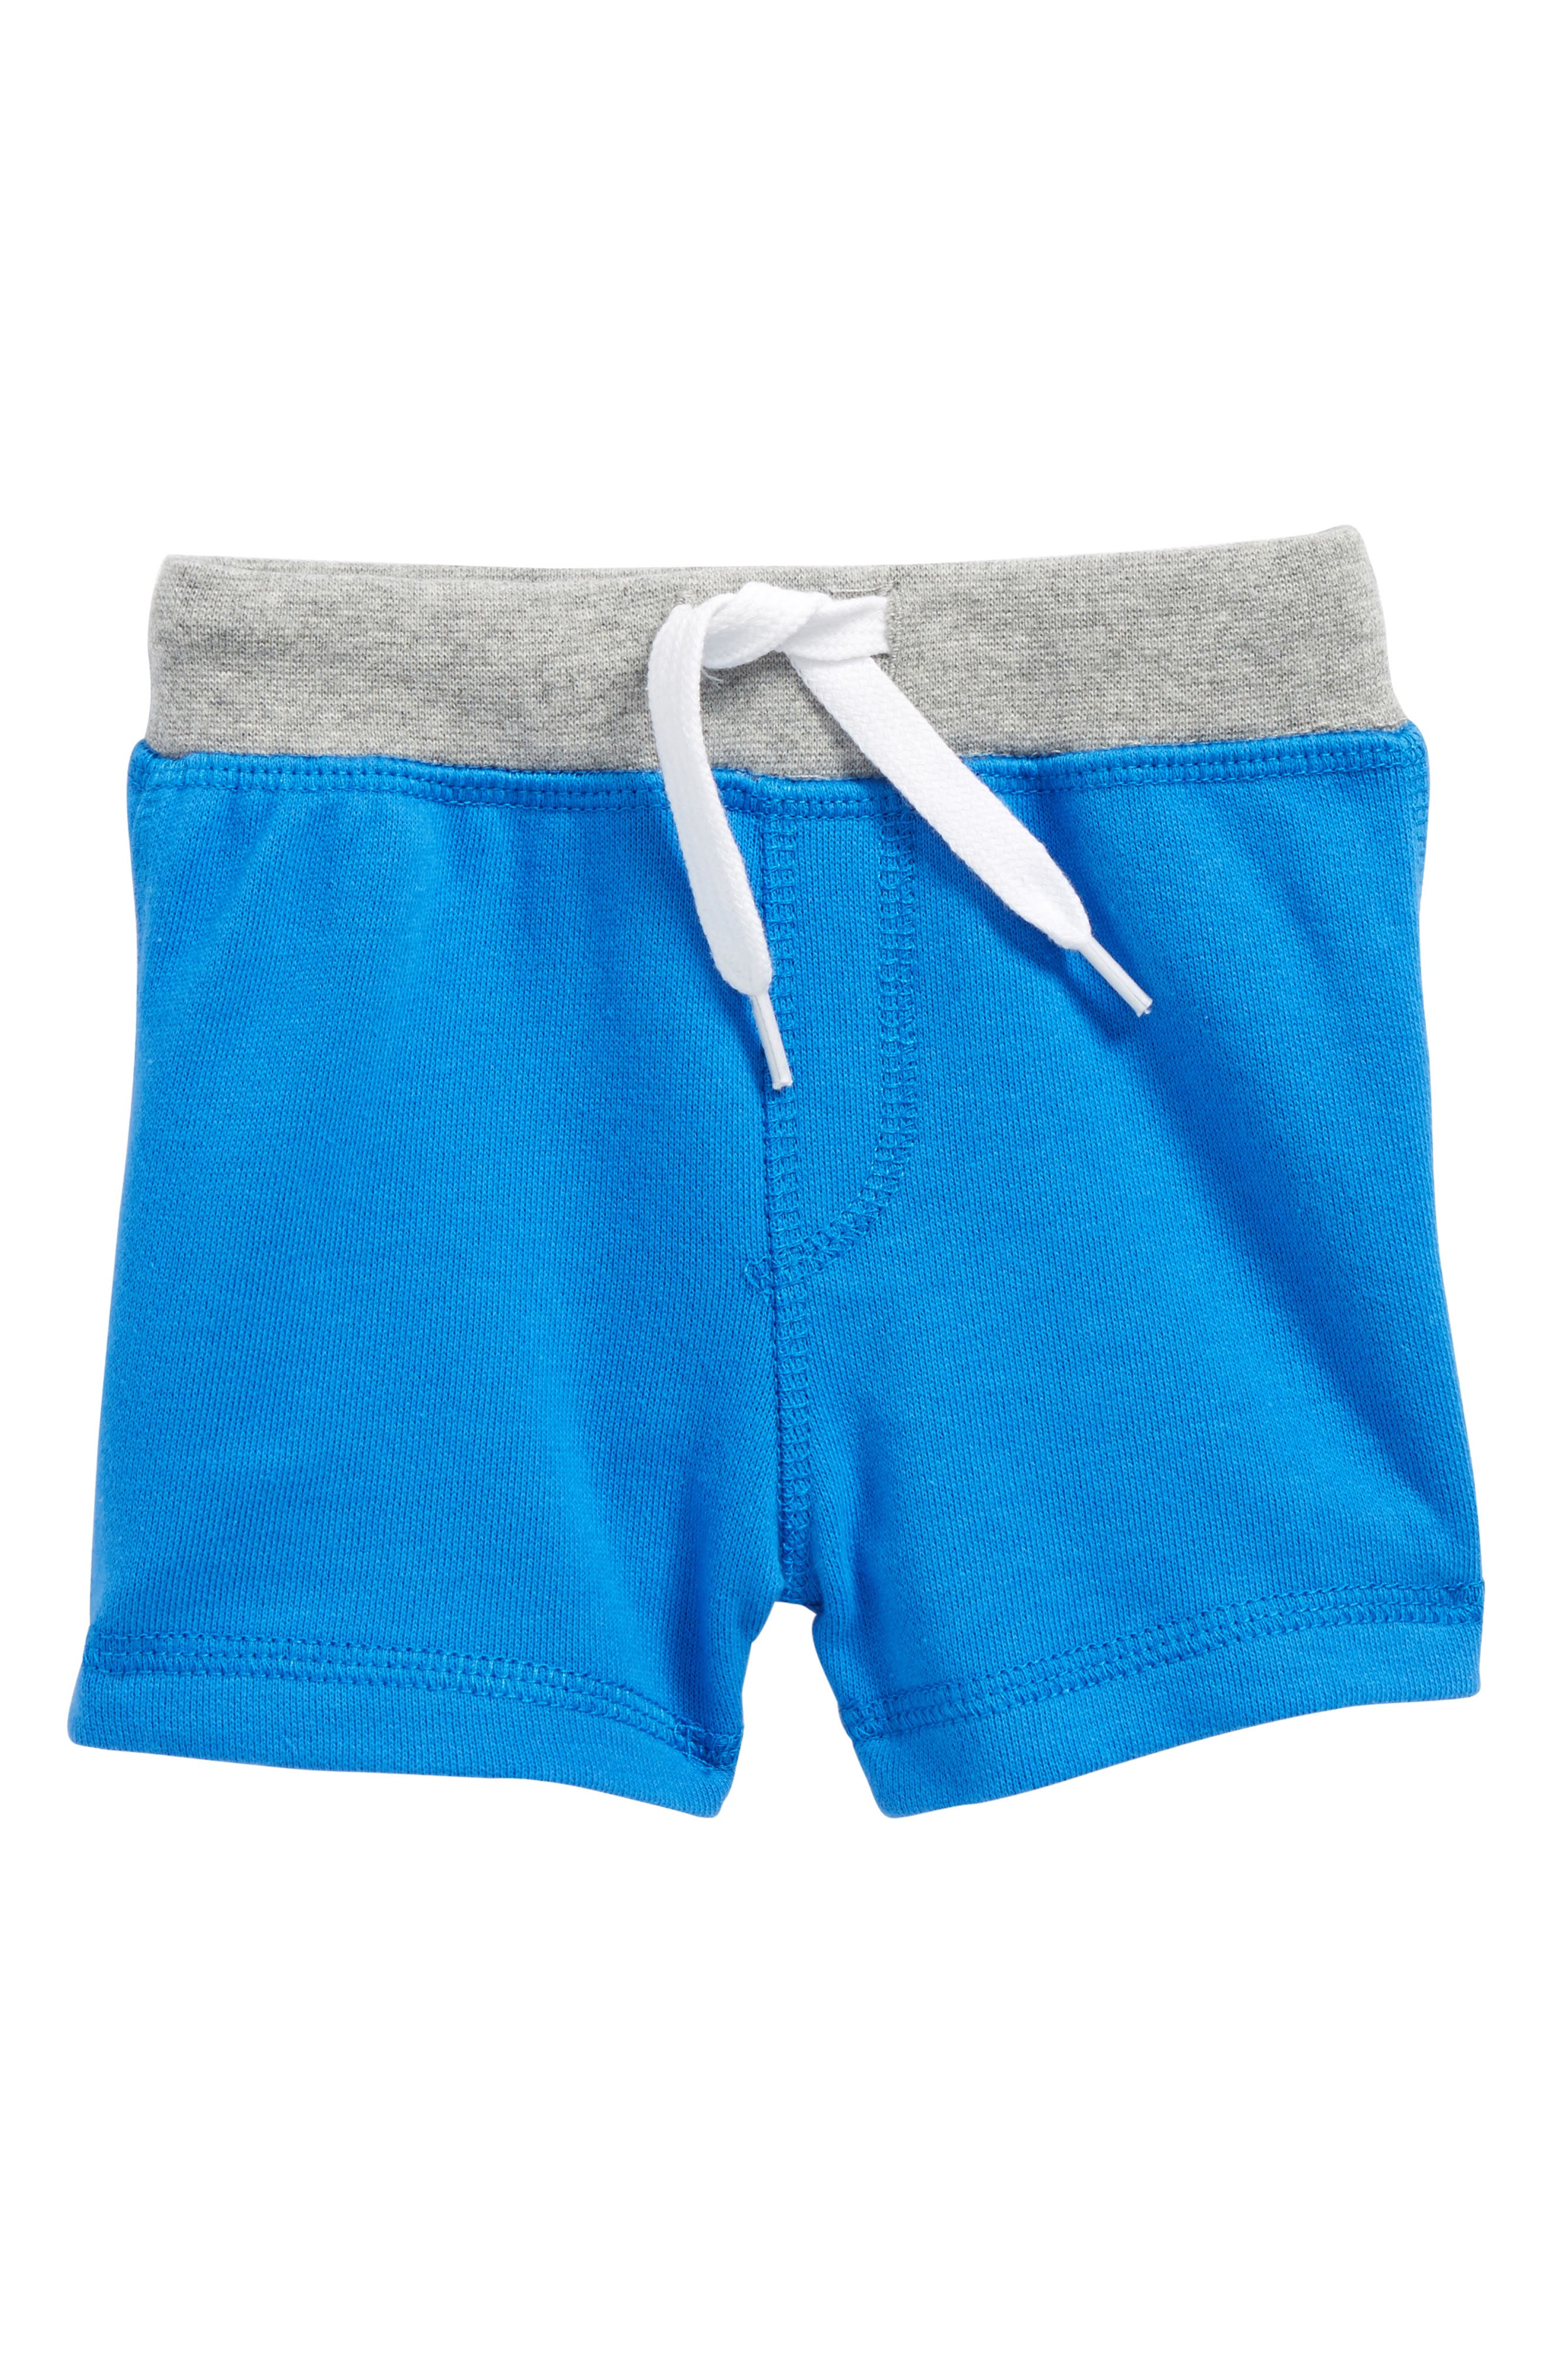 Pull On Shorts,                         Main,                         color, Blue Lolite